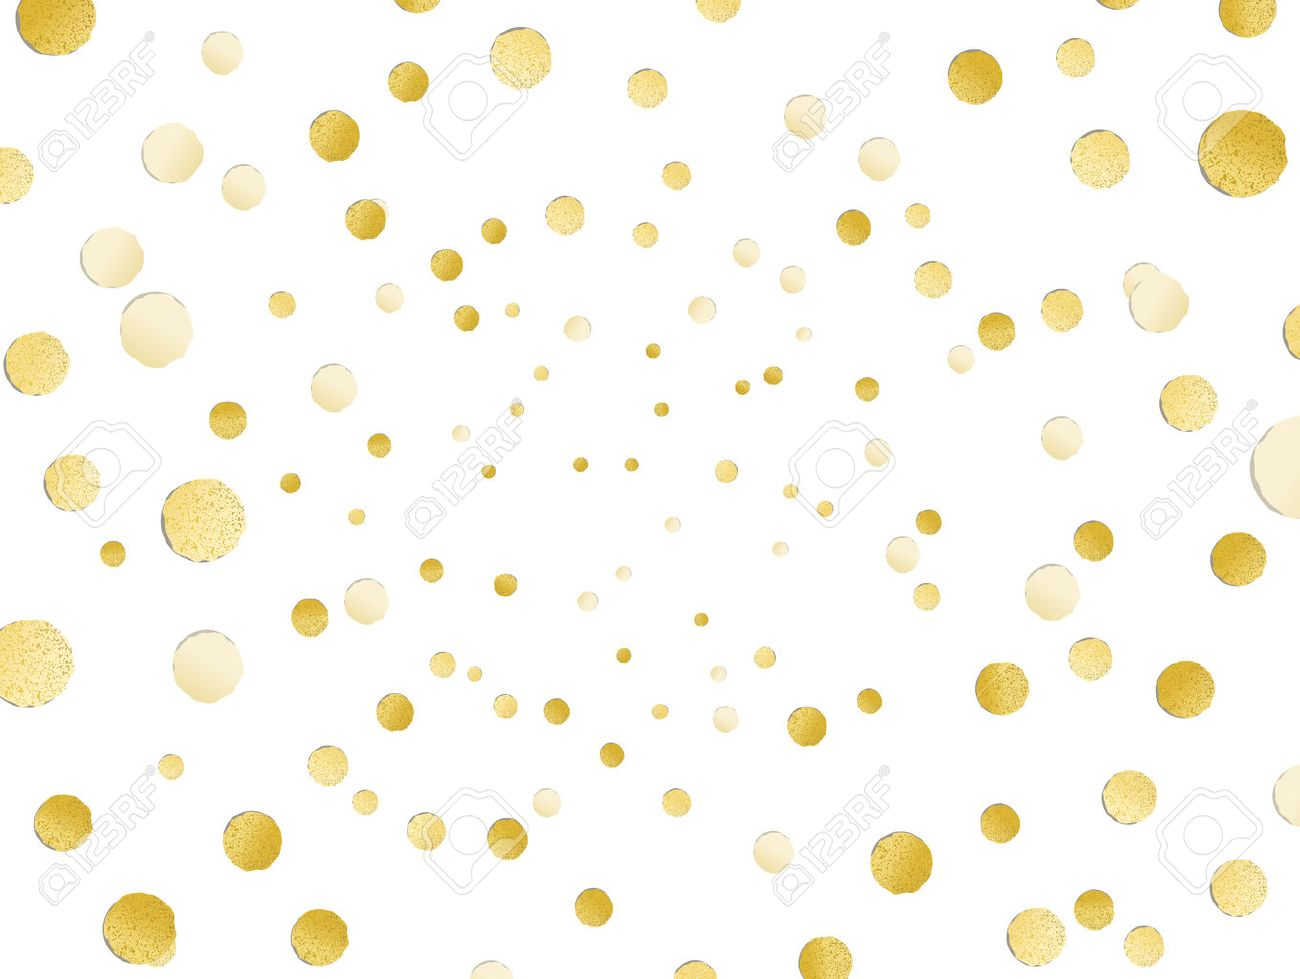 Glitter dots clipart picture royalty free stock Confetti clipart gold dot - 21 transparent clip arts, images and ... picture royalty free stock